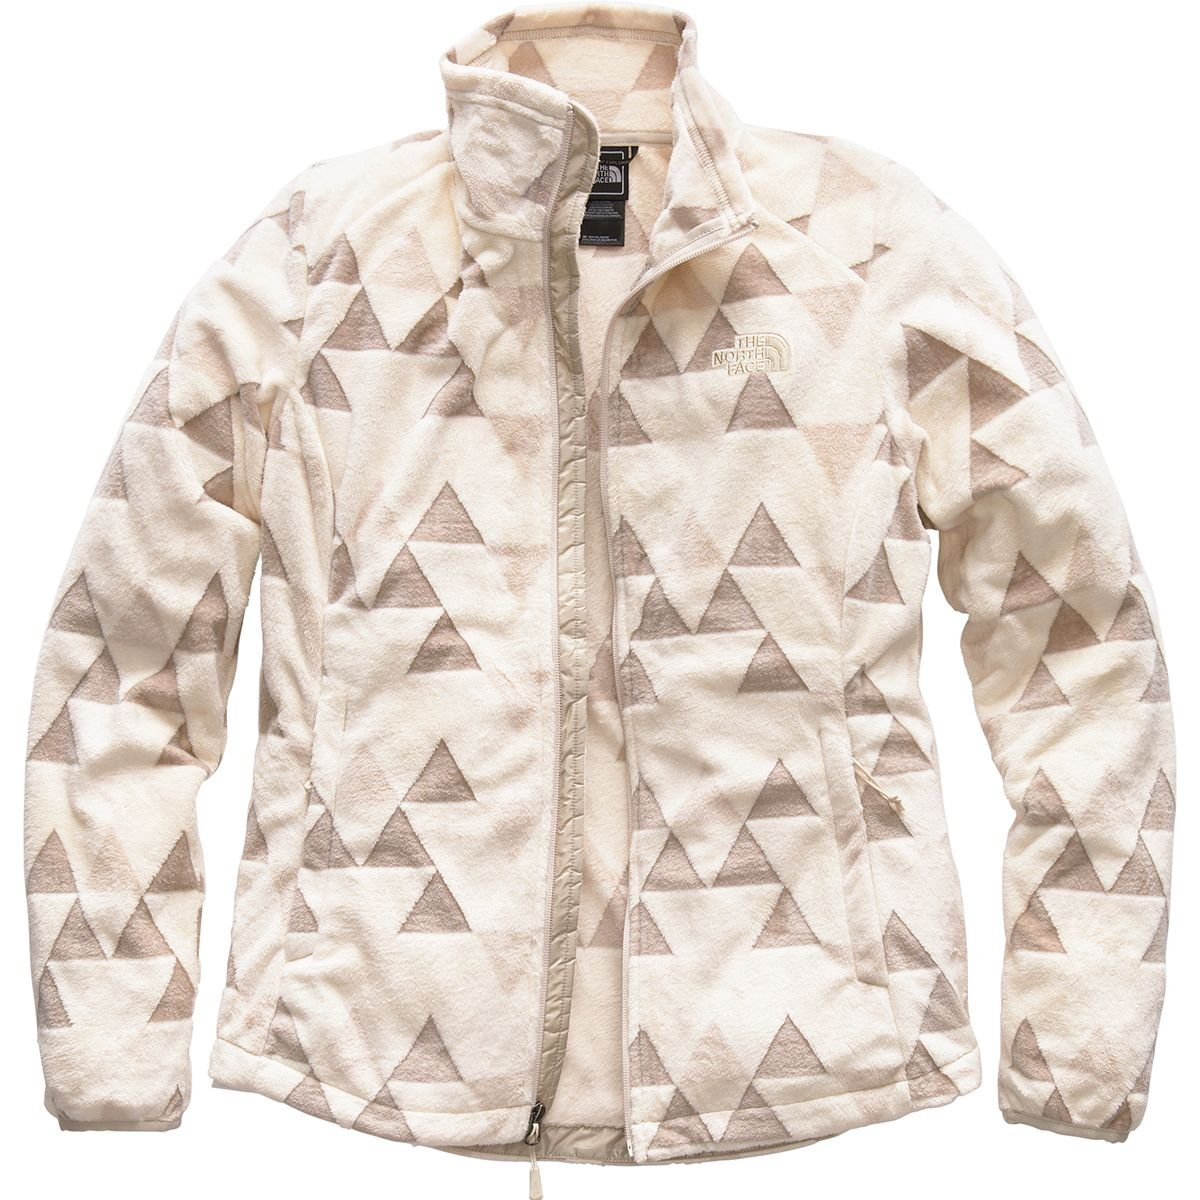 (ザノースフェイス) The North Face Novelty Osito Jacket レディース ジャケットVintage White/Peyote Beige Tnf Tossed Logo Print [並行輸入品]   B07F9X5YCG